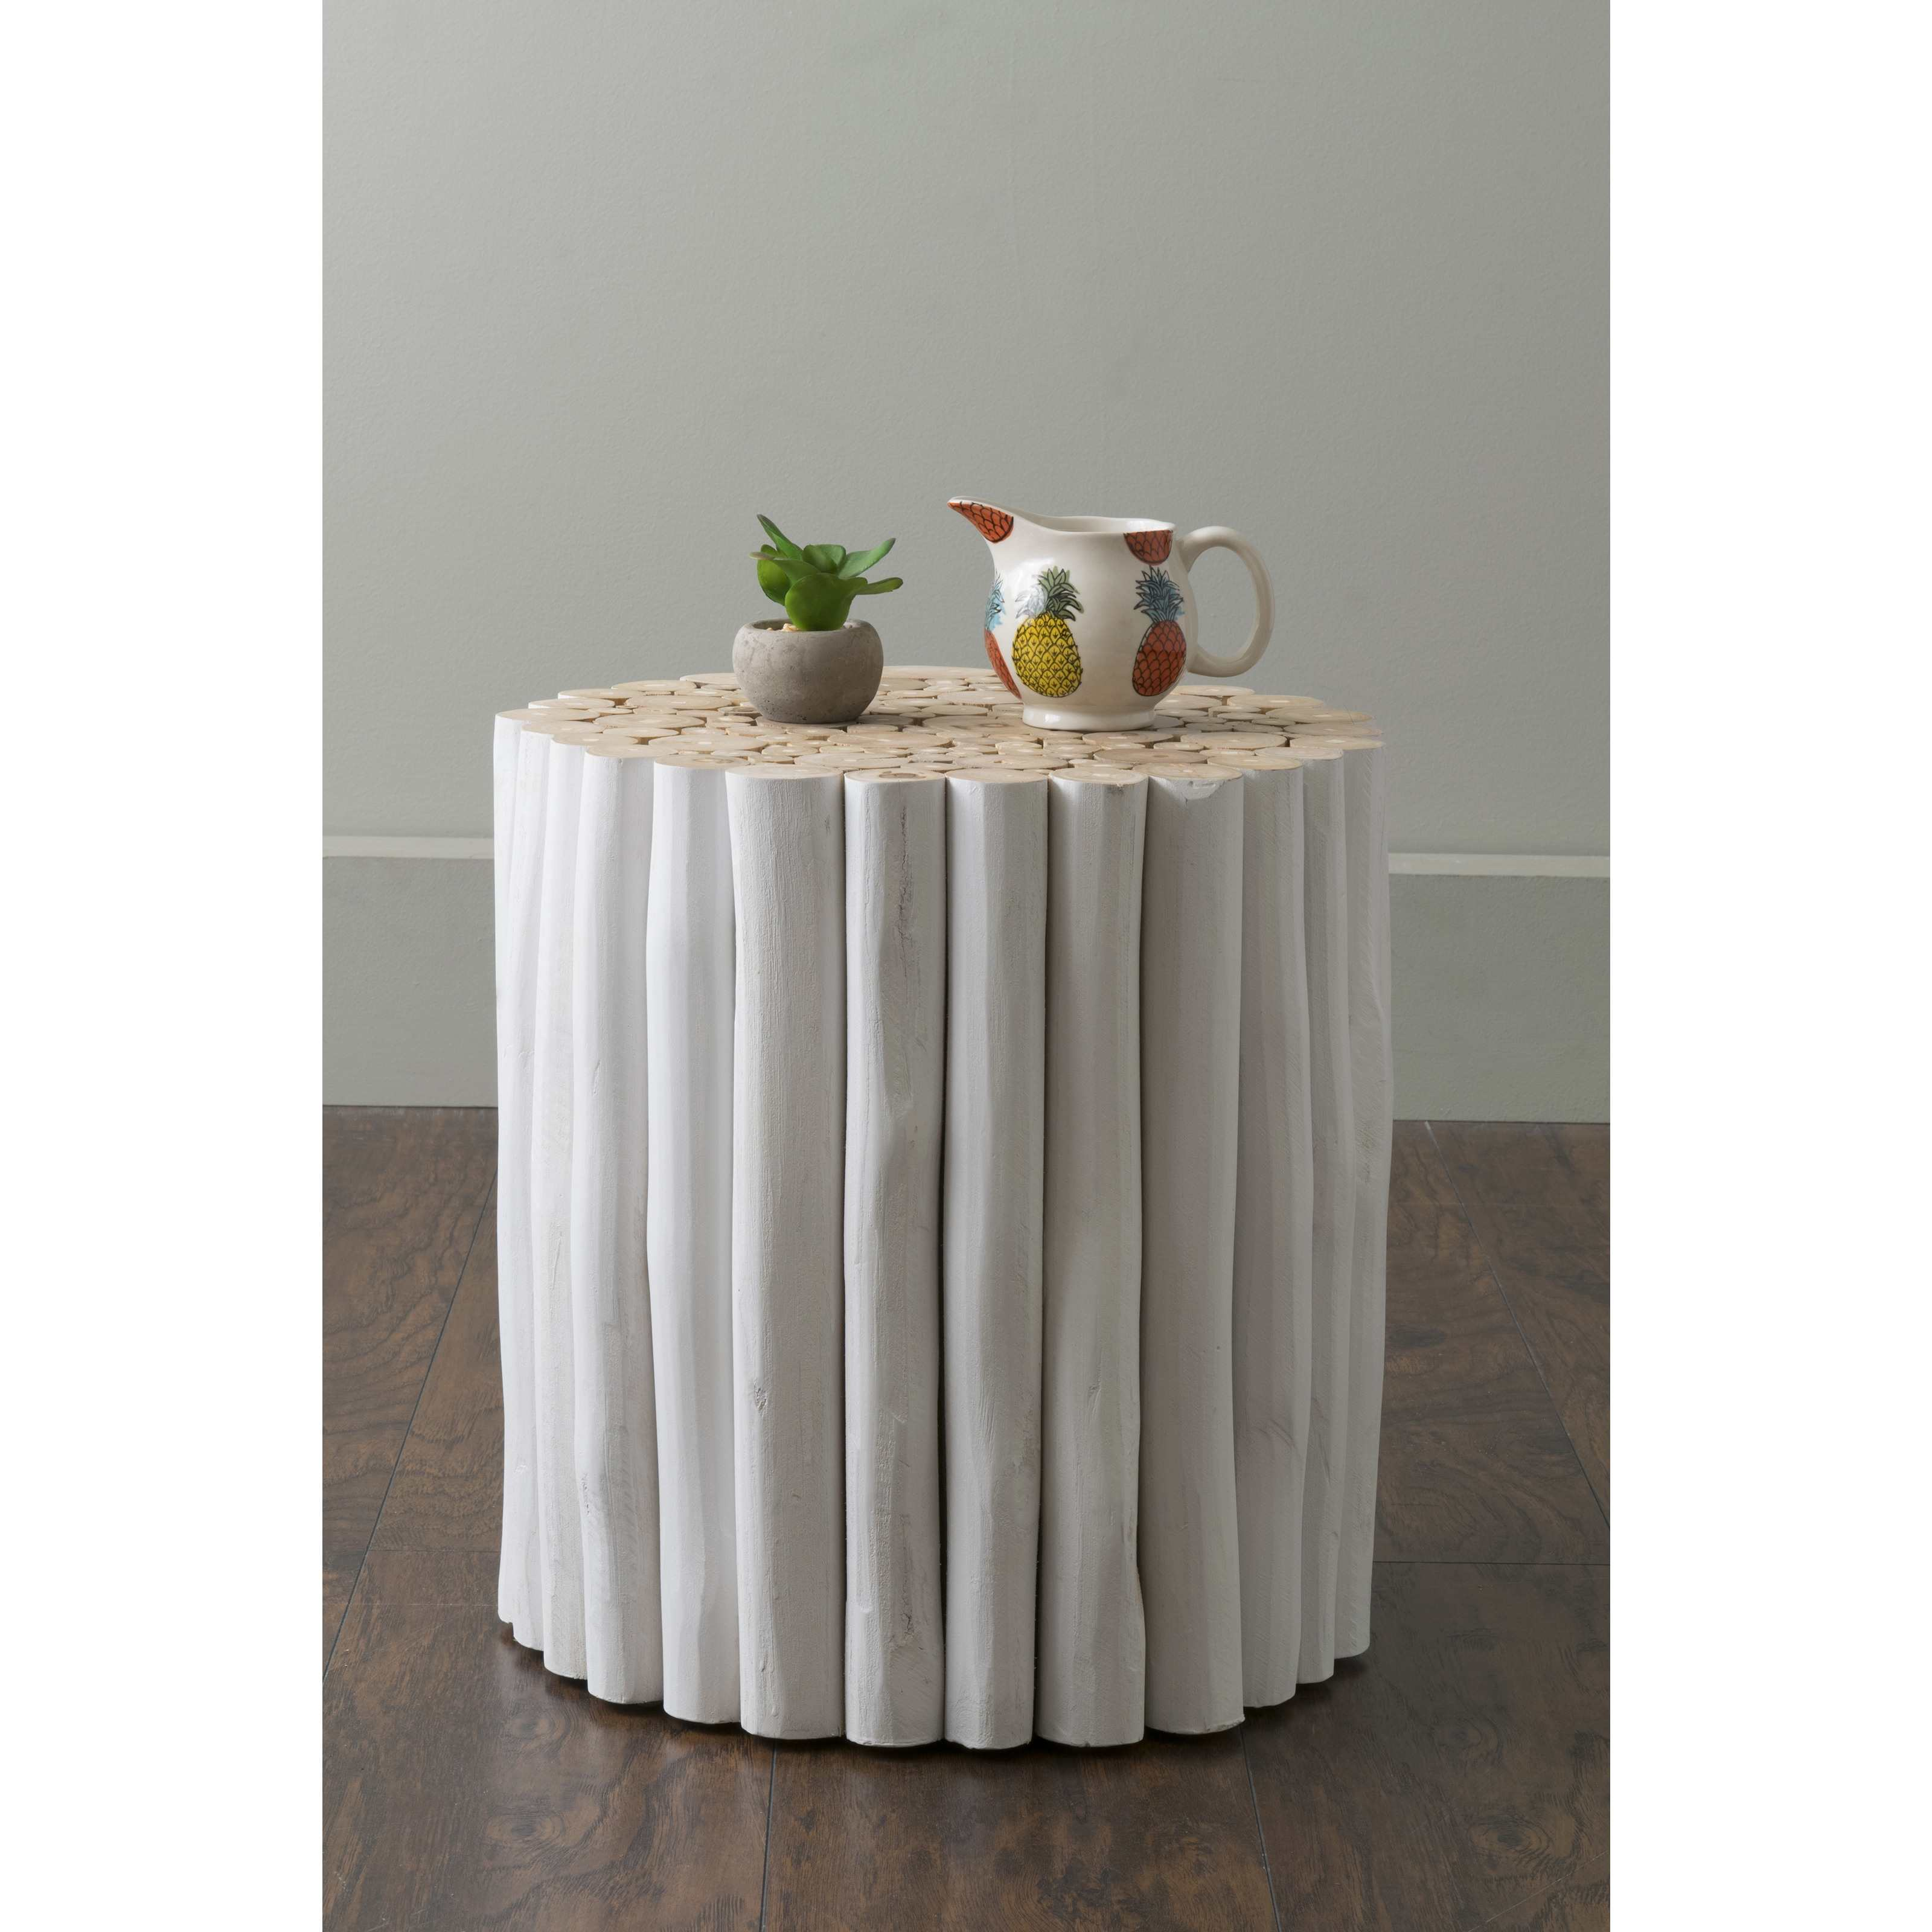 east main stanley white round teakwood accent table stool mains marble bedroom furniture decor teak wood decoration umbrella stand base tablecloth black bedside cute side tables